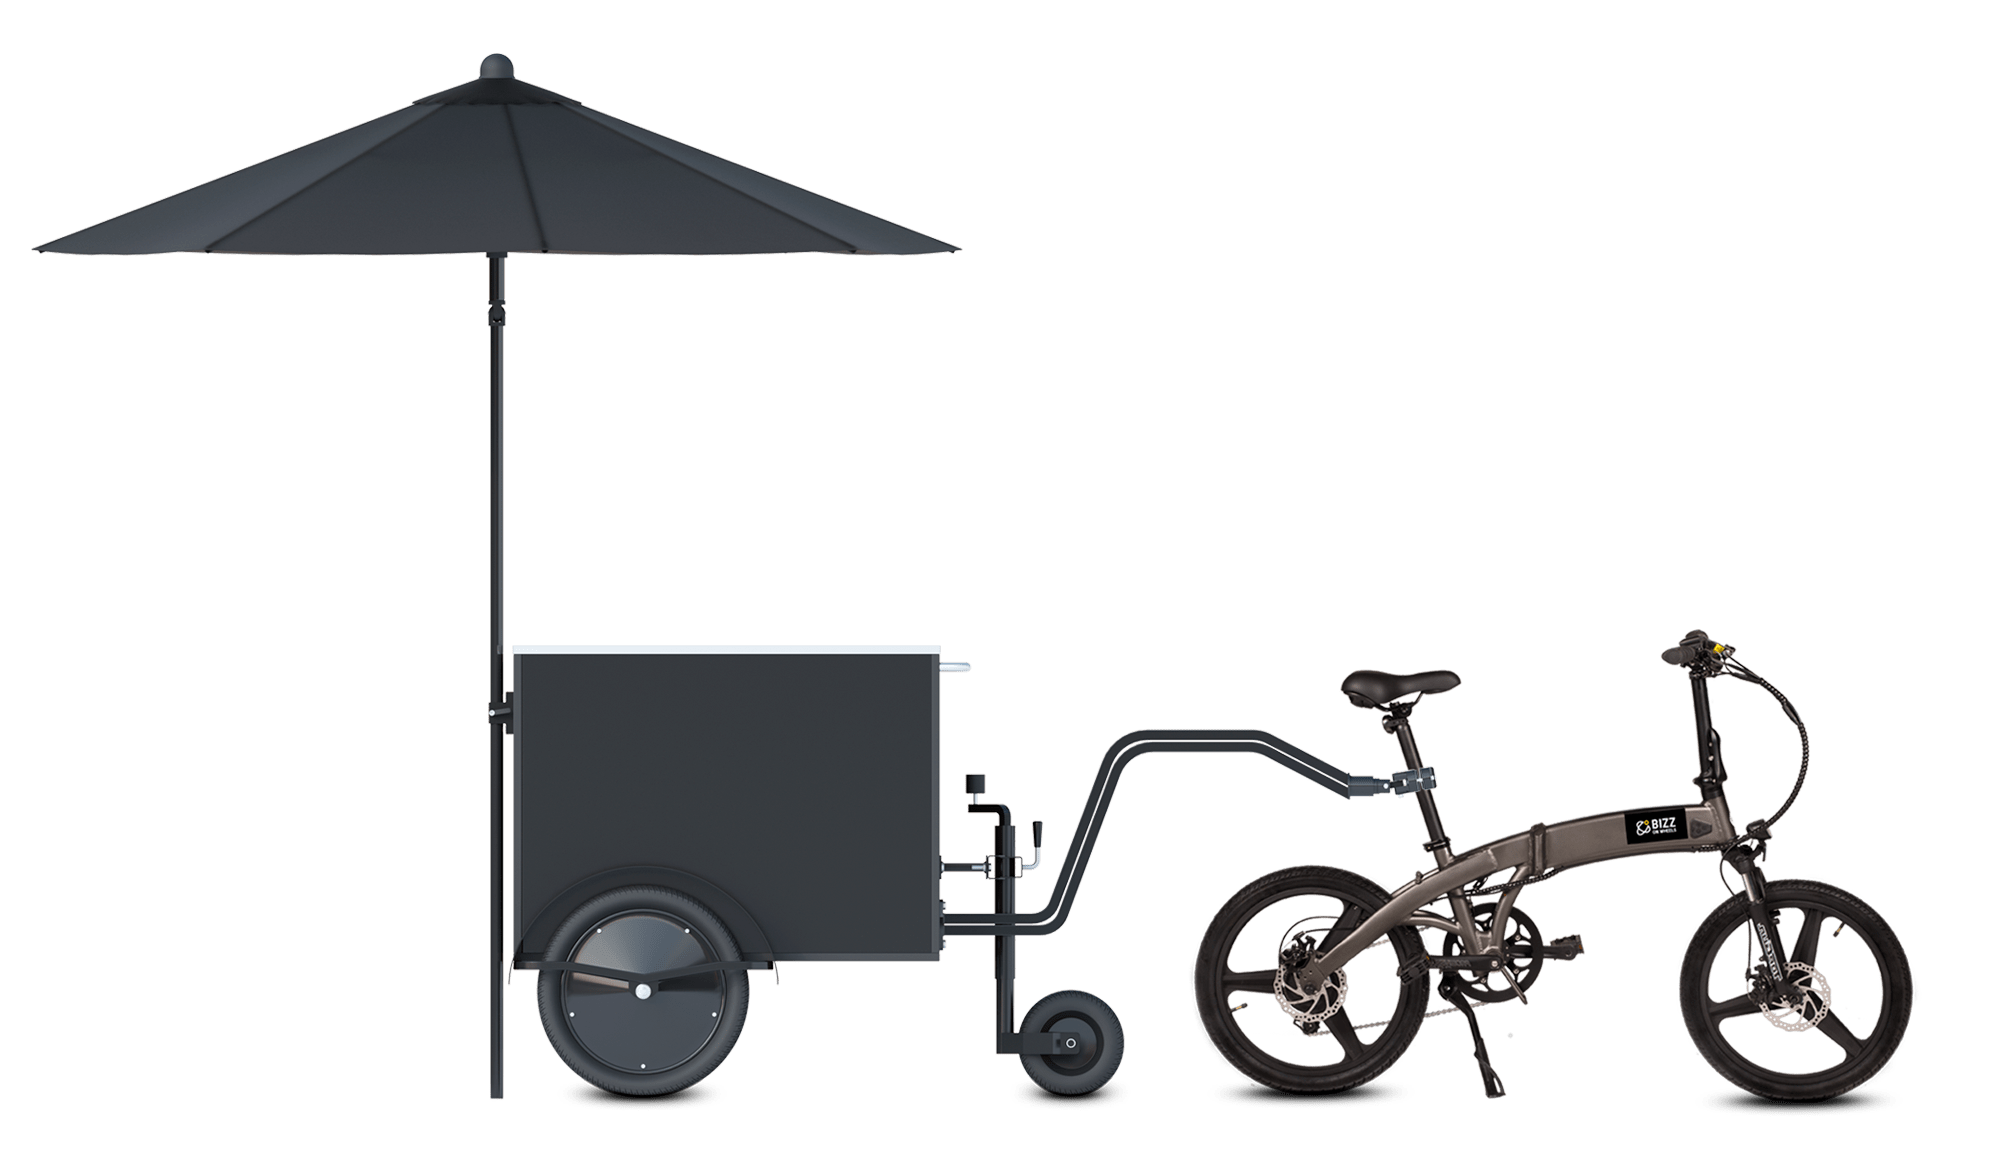 Bicycle towable small vendor cart